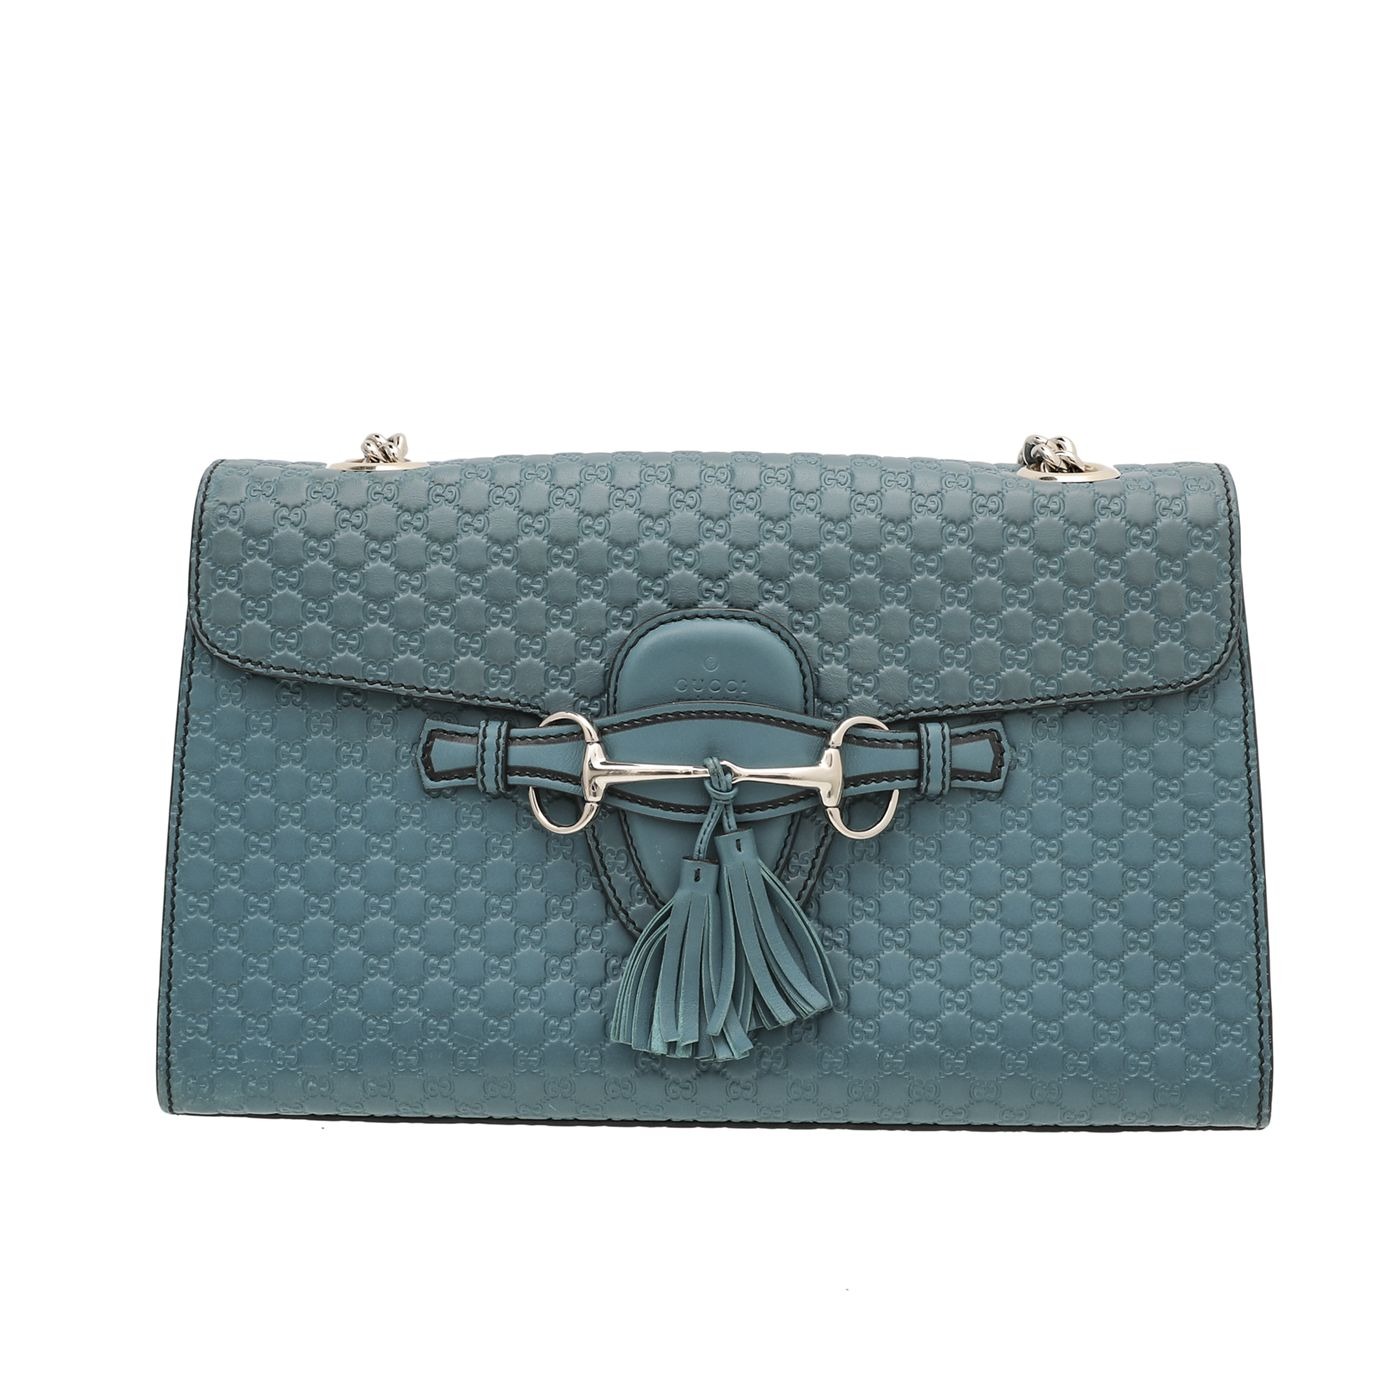 Gucci Turquoise Microguccissima Emily Bag